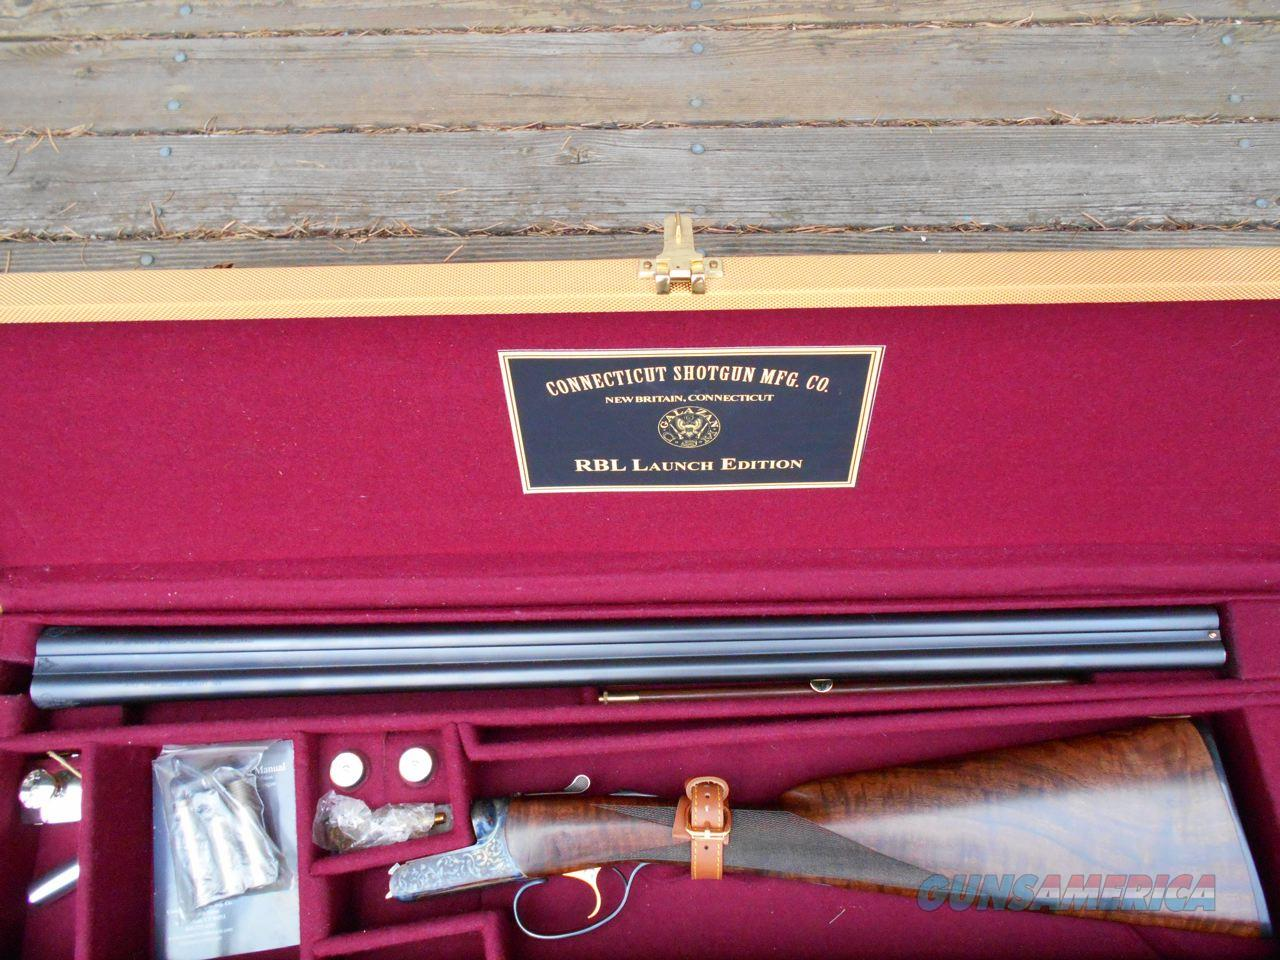 Connecticut Arms (Galazan) 20g RBL shotgun  Guns > Shotguns > Connecticut (Galazan) Shotguns